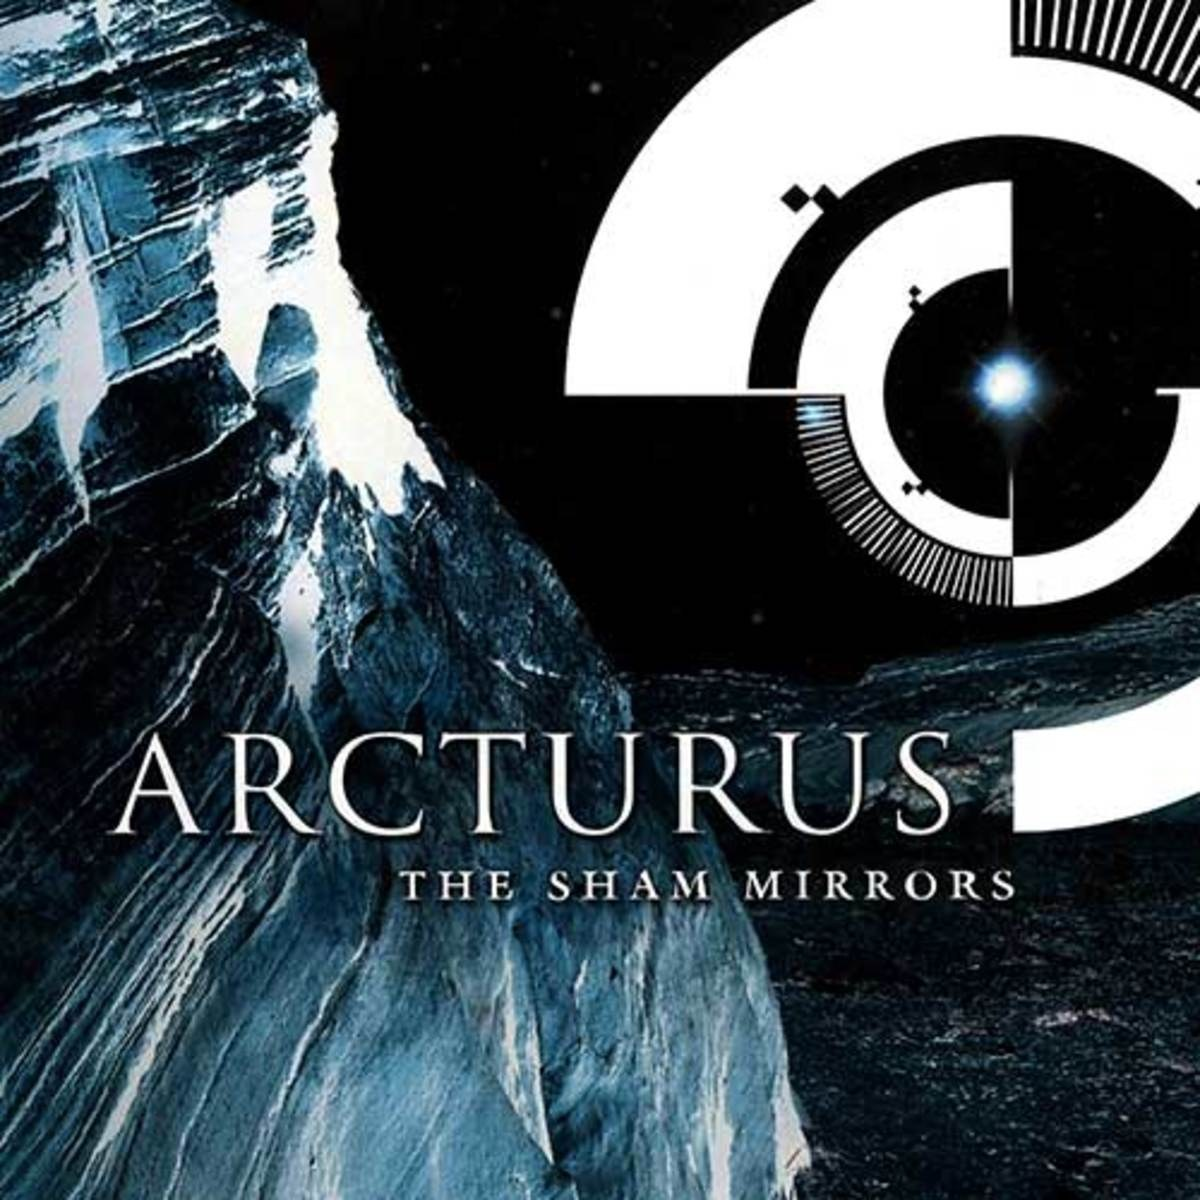 Review for Arcturus - The Sham Mirrors